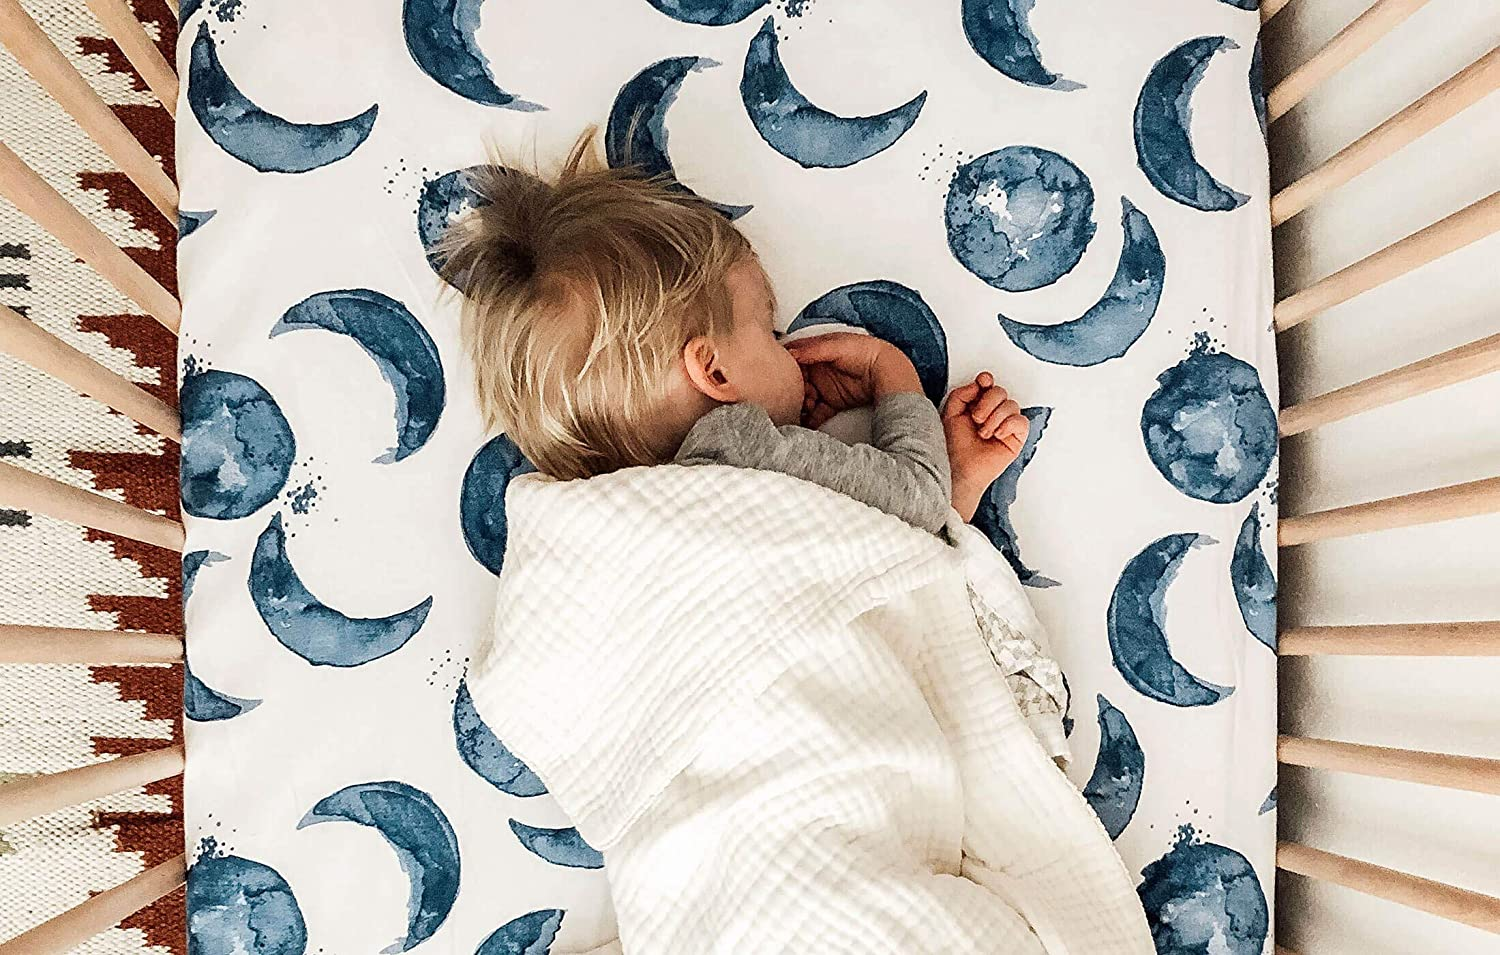 Boys /& Unisex 100/% Organic Cotton Crib Sheet for Standard Crib and Toddler Mattresses Blue Guide the Way Pattern Fitted Crib Sheet Burts Bees Baby